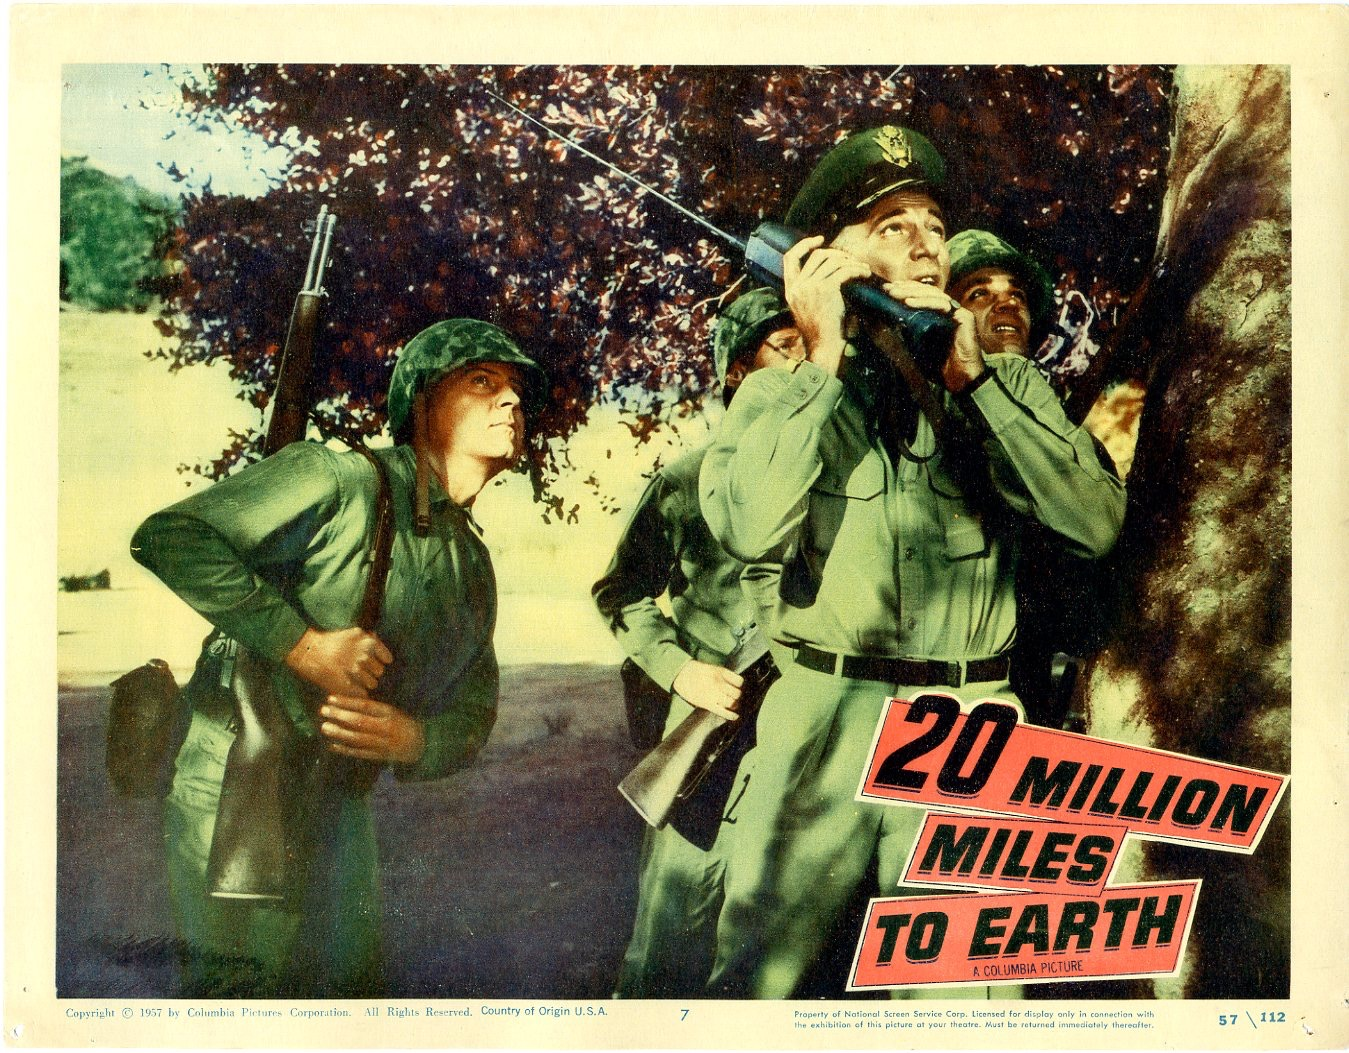 20 Million Miles To Earth 1957 - 399